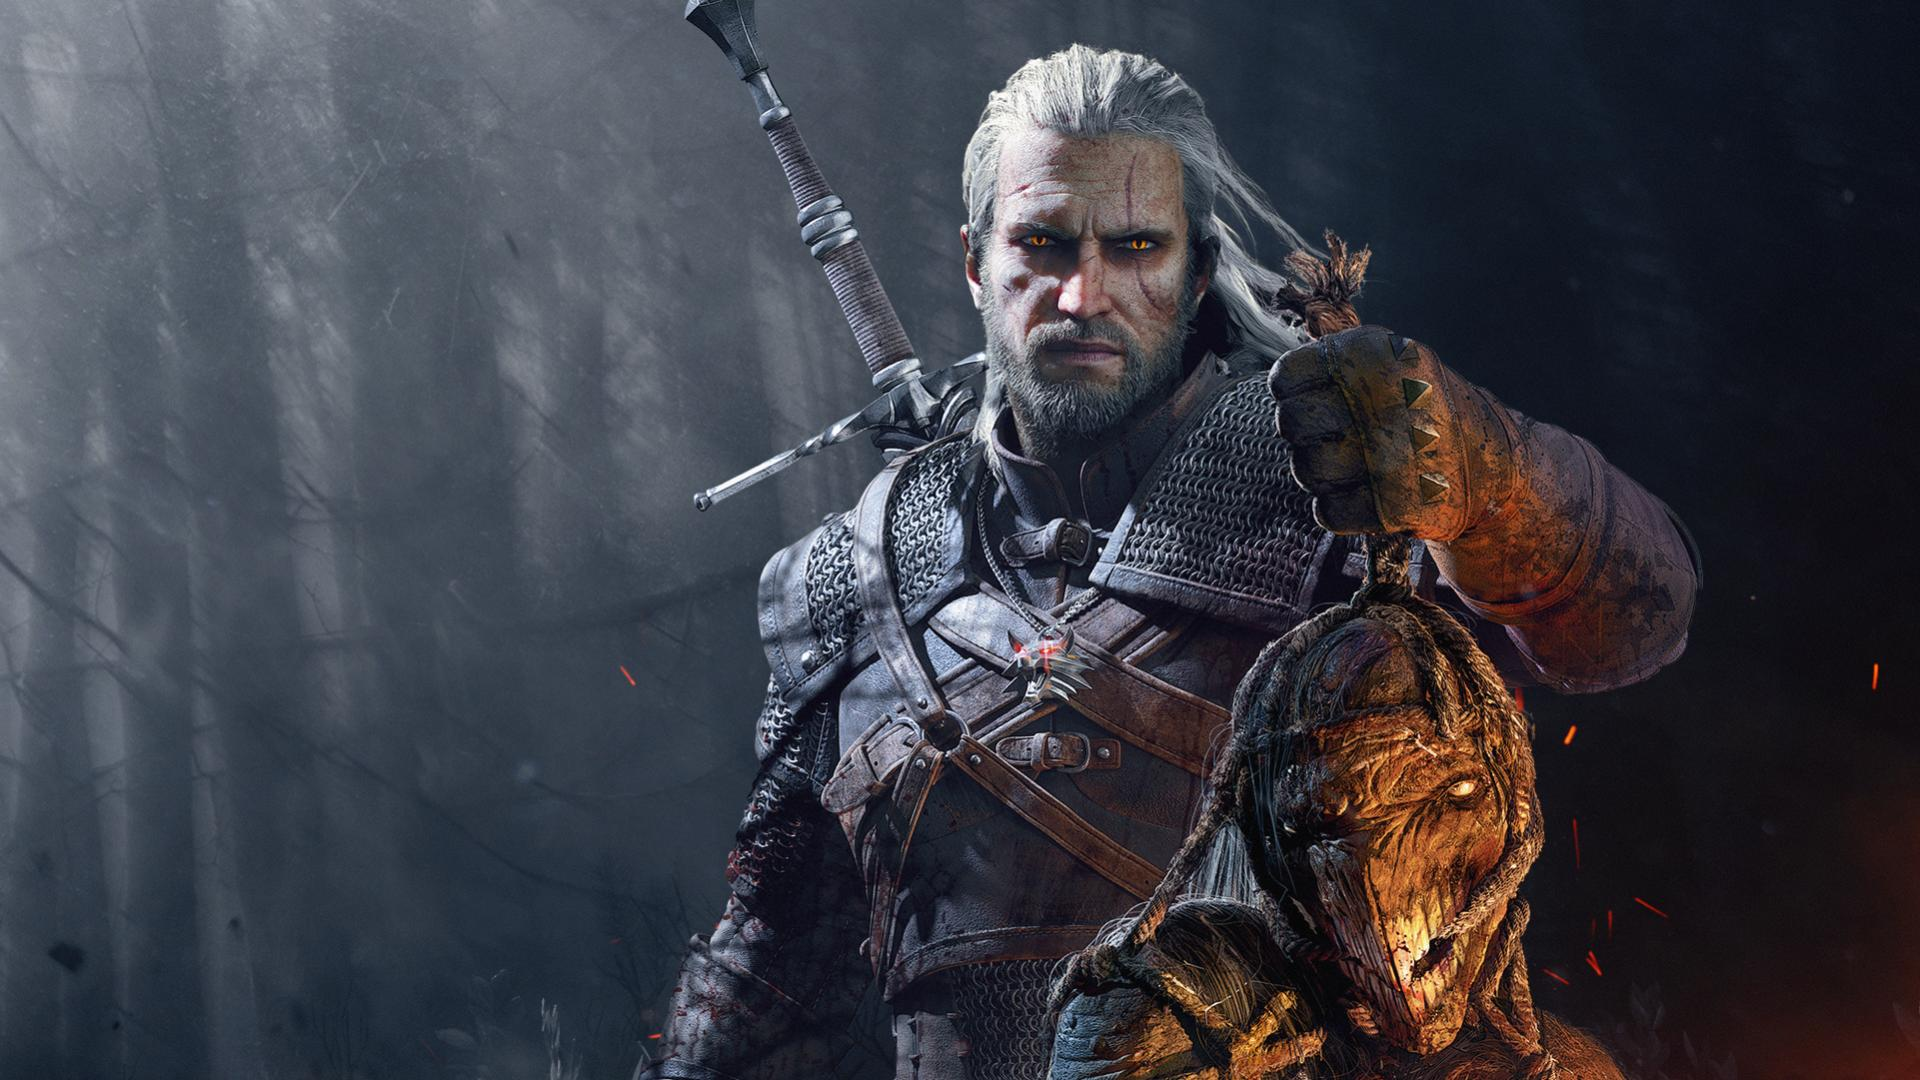 La serie de The Witcher se retrasa a 2020